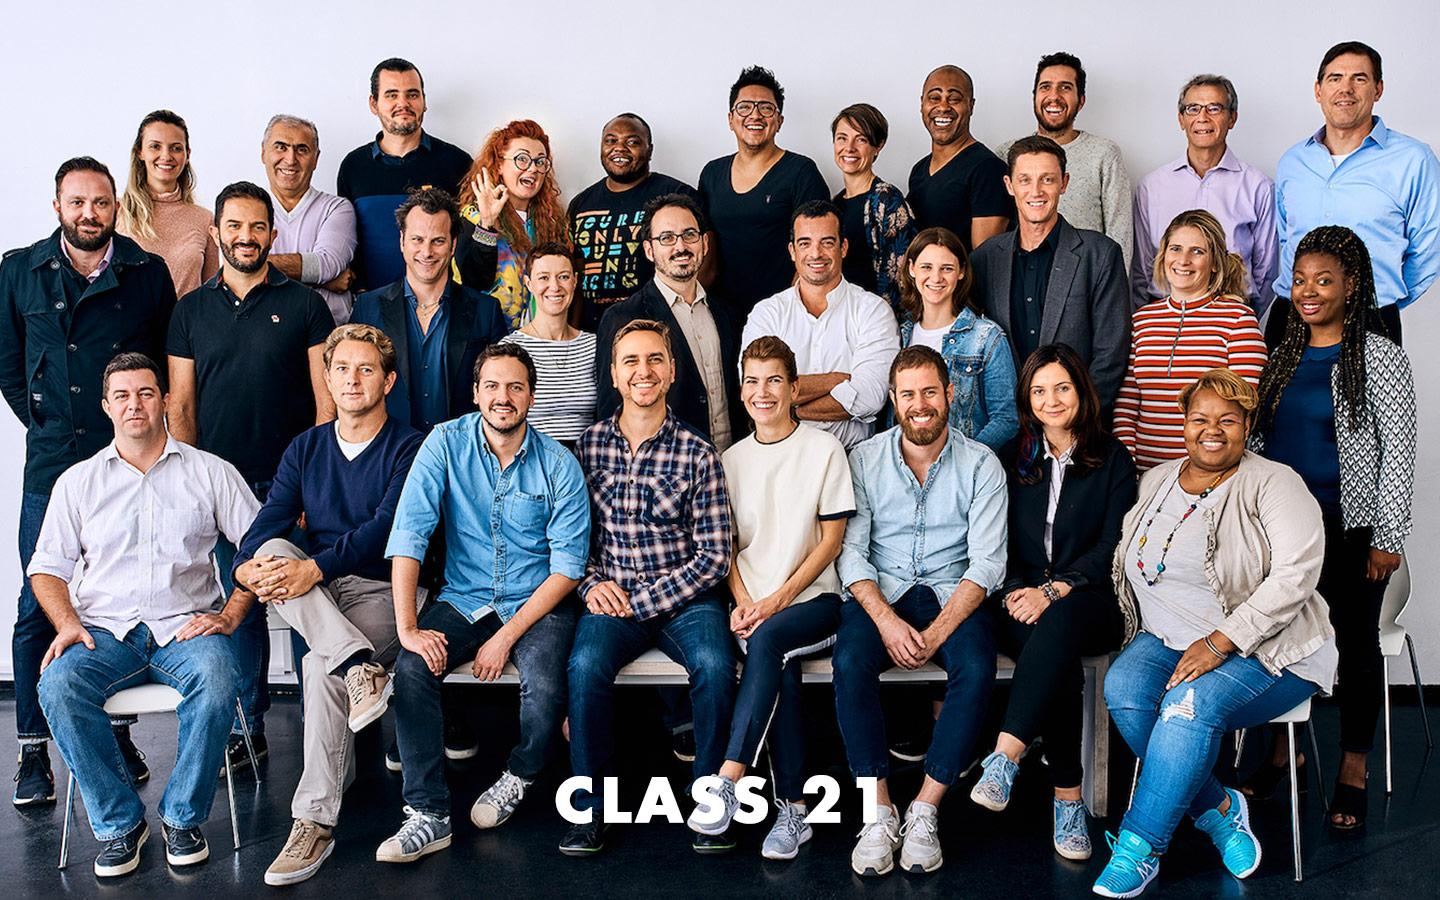 Class Picture EMBA Class 21